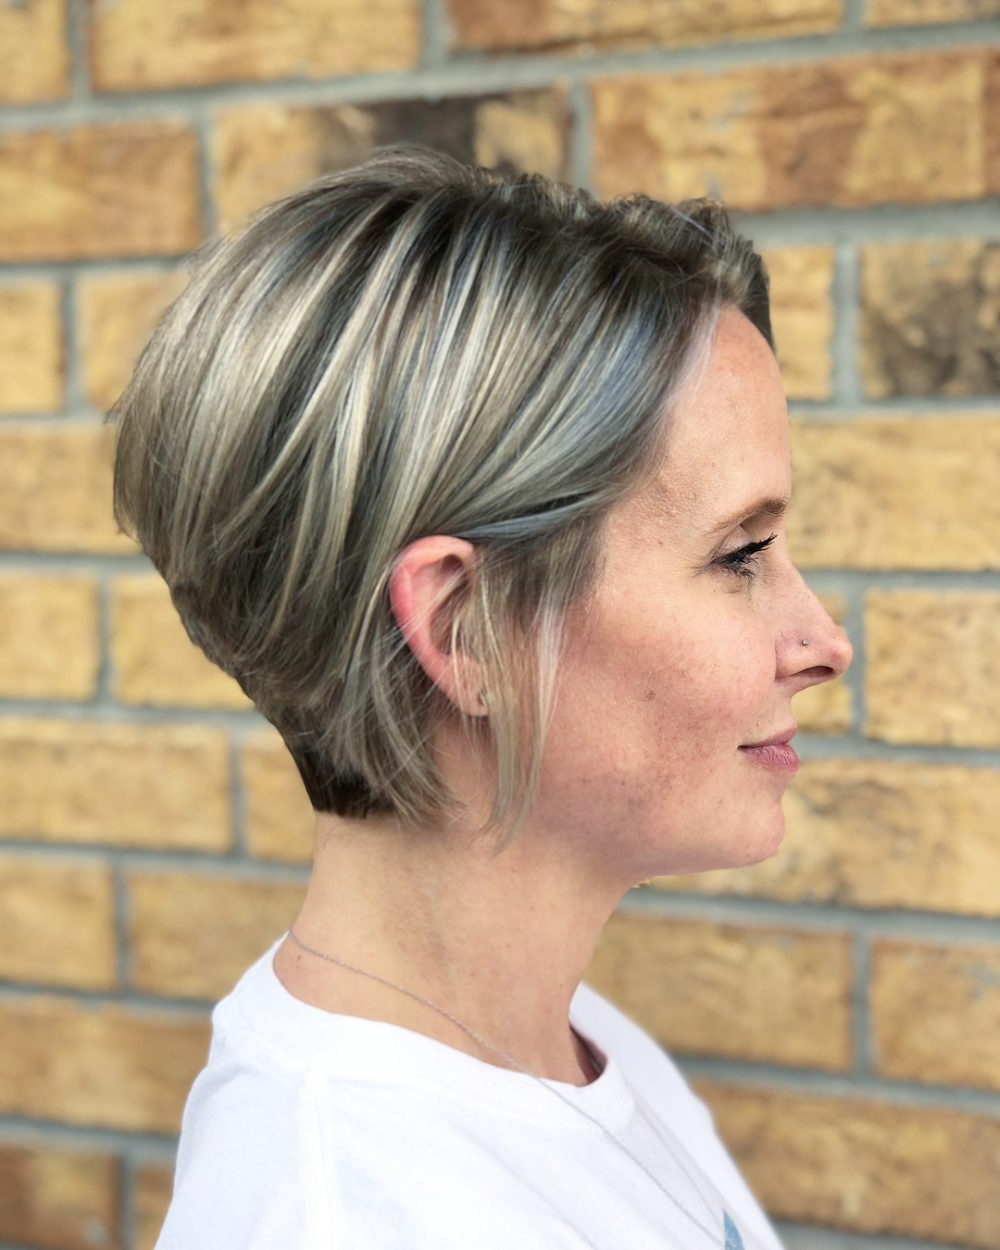 42 Sexiest Short Hairstyles For Women Over 40 In 2018 Intended For Short Hairstyle For Over  (View 1 of 25)